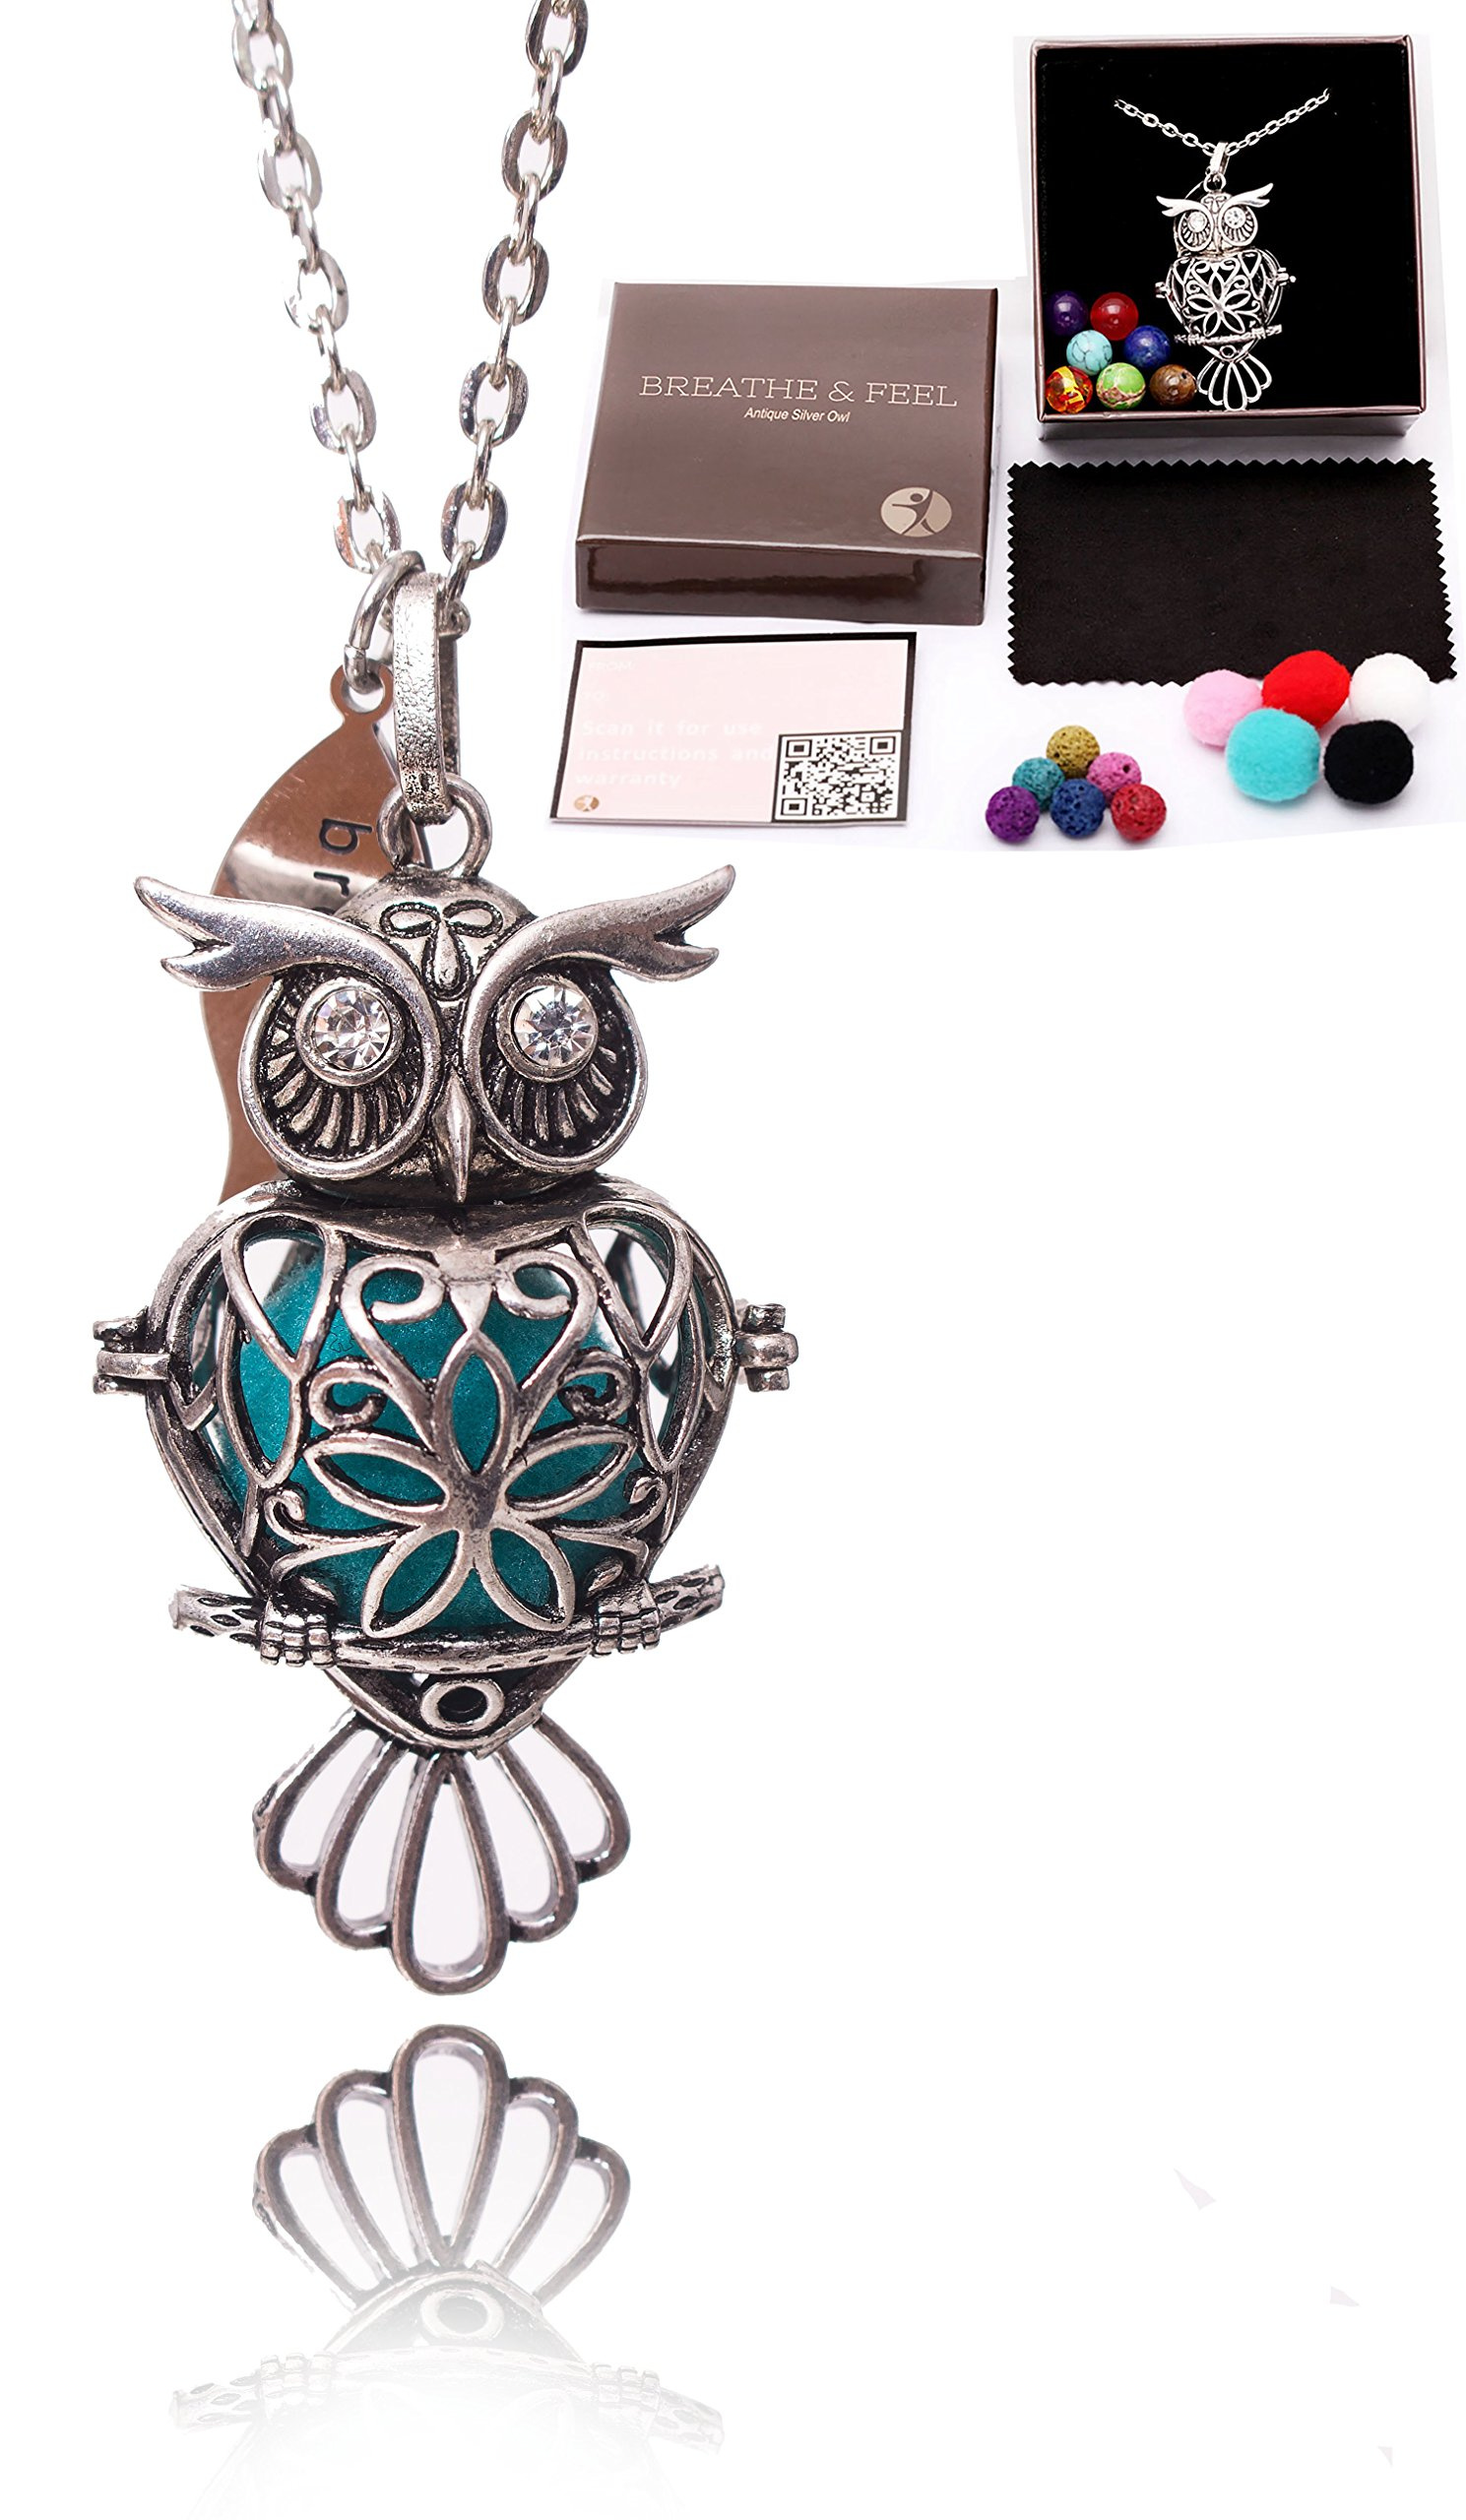 Owl Aromatherapy Essential Oil Diffuser Necklace with Cotton Beads - Lava Stones - Chakra Rocks - Cleaning Cloths